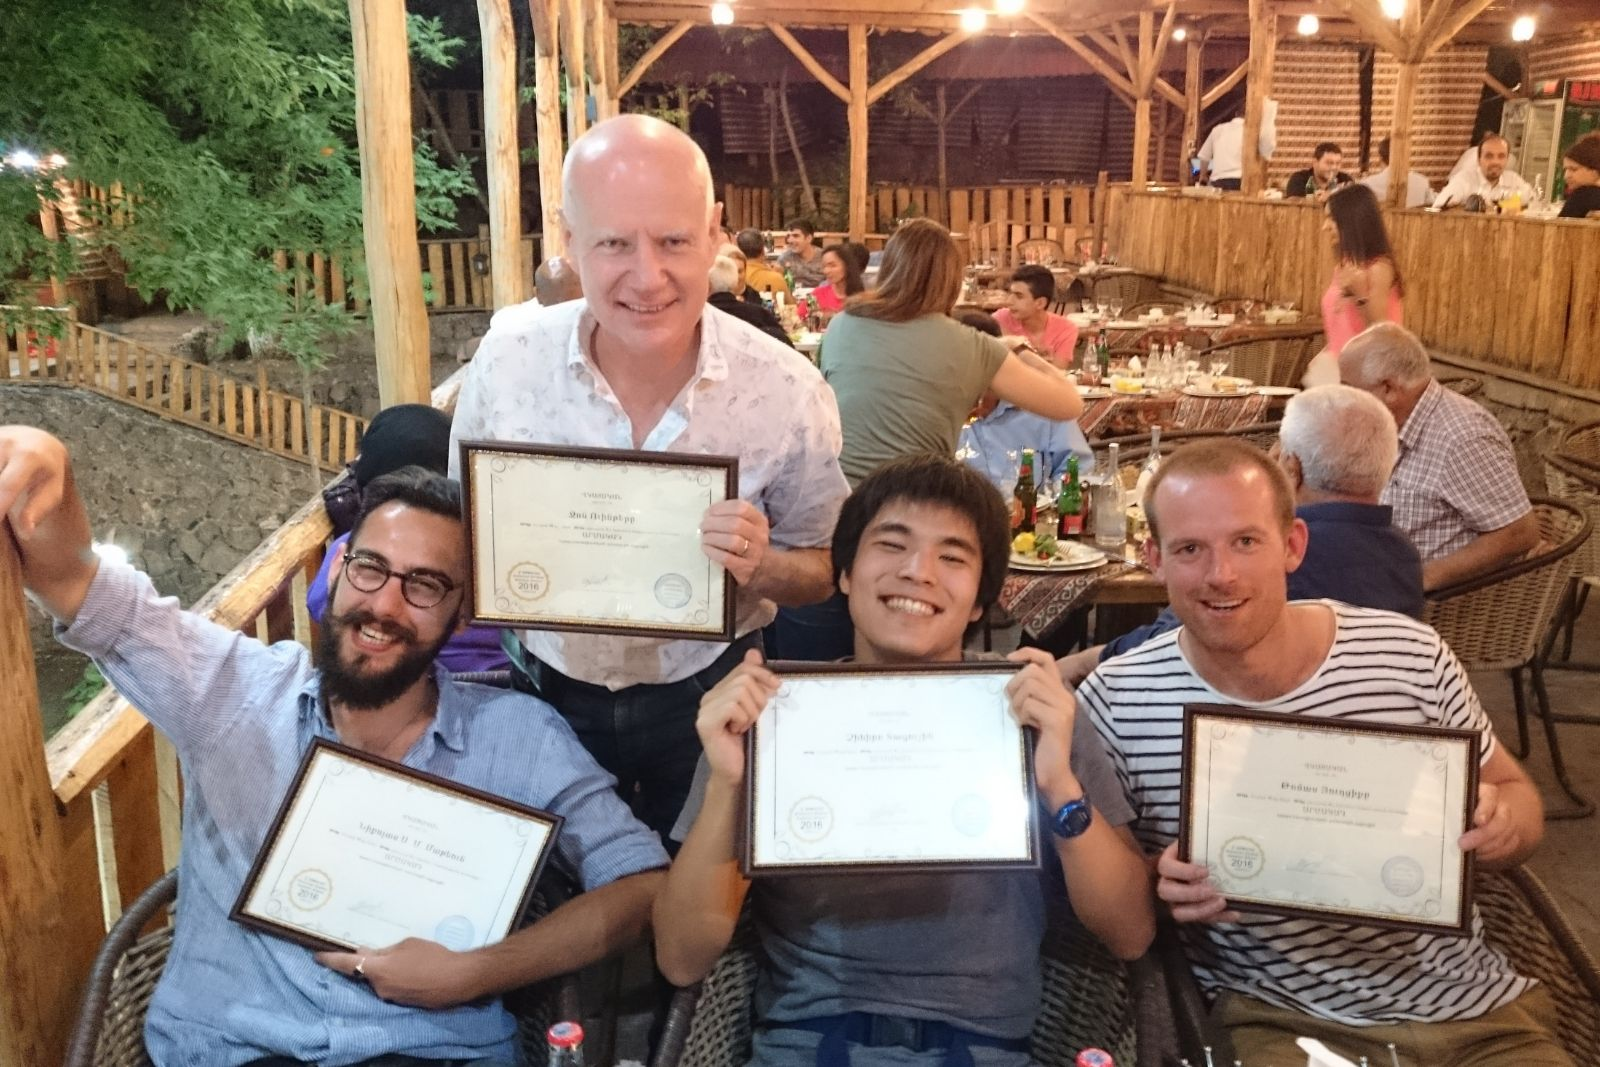 Armenian language summer school 2016 participants received certificates during farewell party